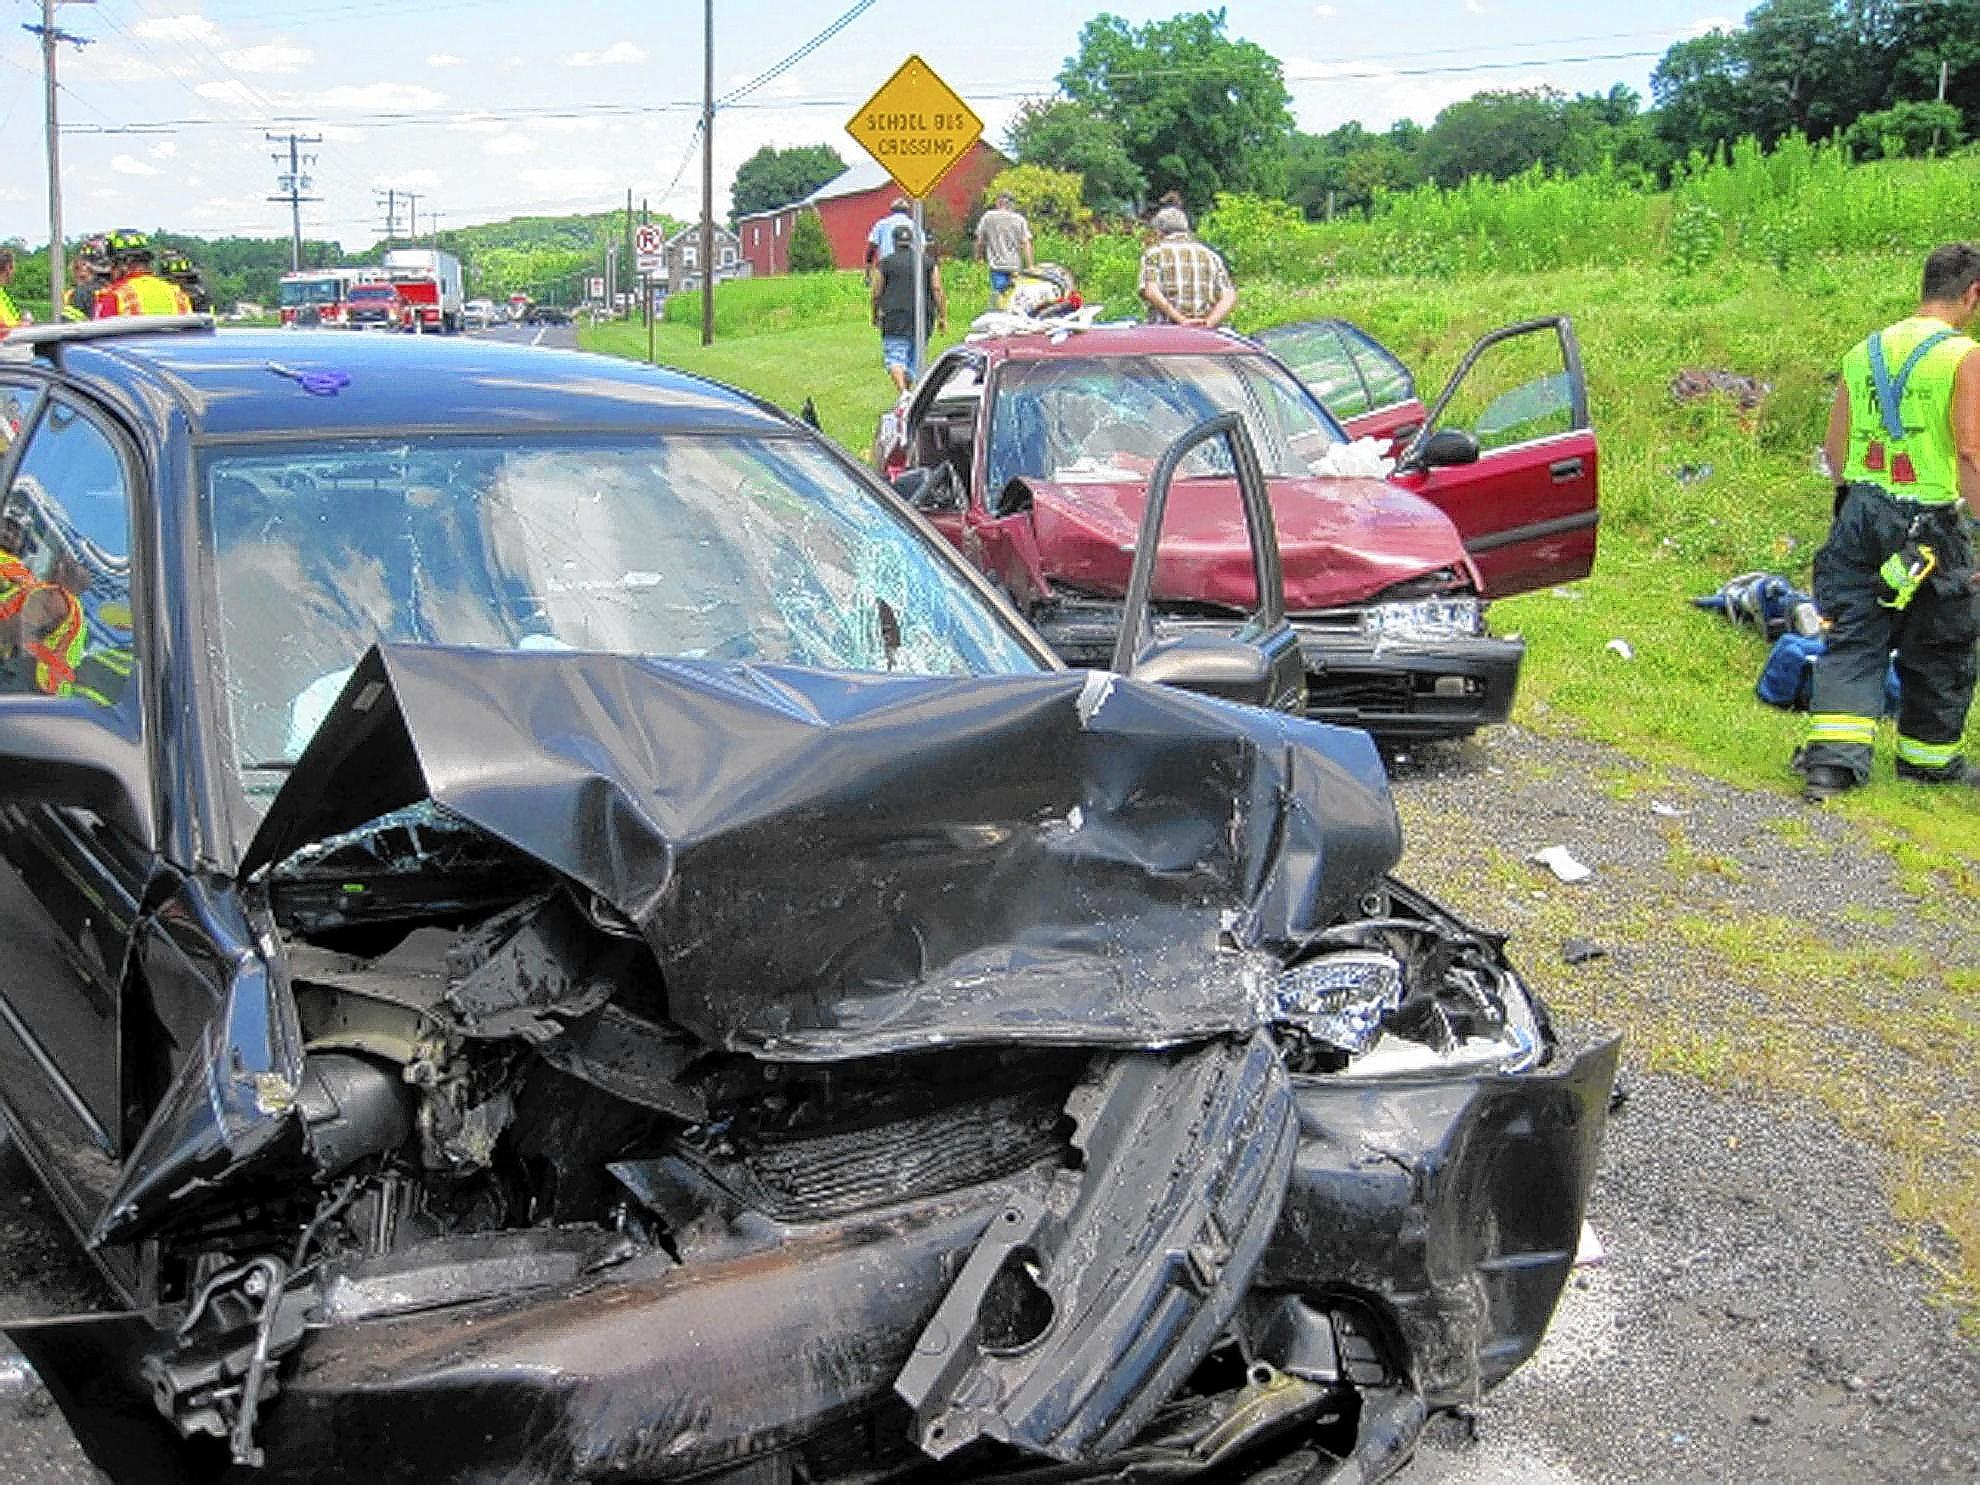 Amie J. Minnich, 38, of Richland Township, Bucks County, was killed in this head-on collission on Route 100 in Berks County Friday afternoon. According to state police, Minnich crossed into the path of an oncoming car about 1:25 p.m.